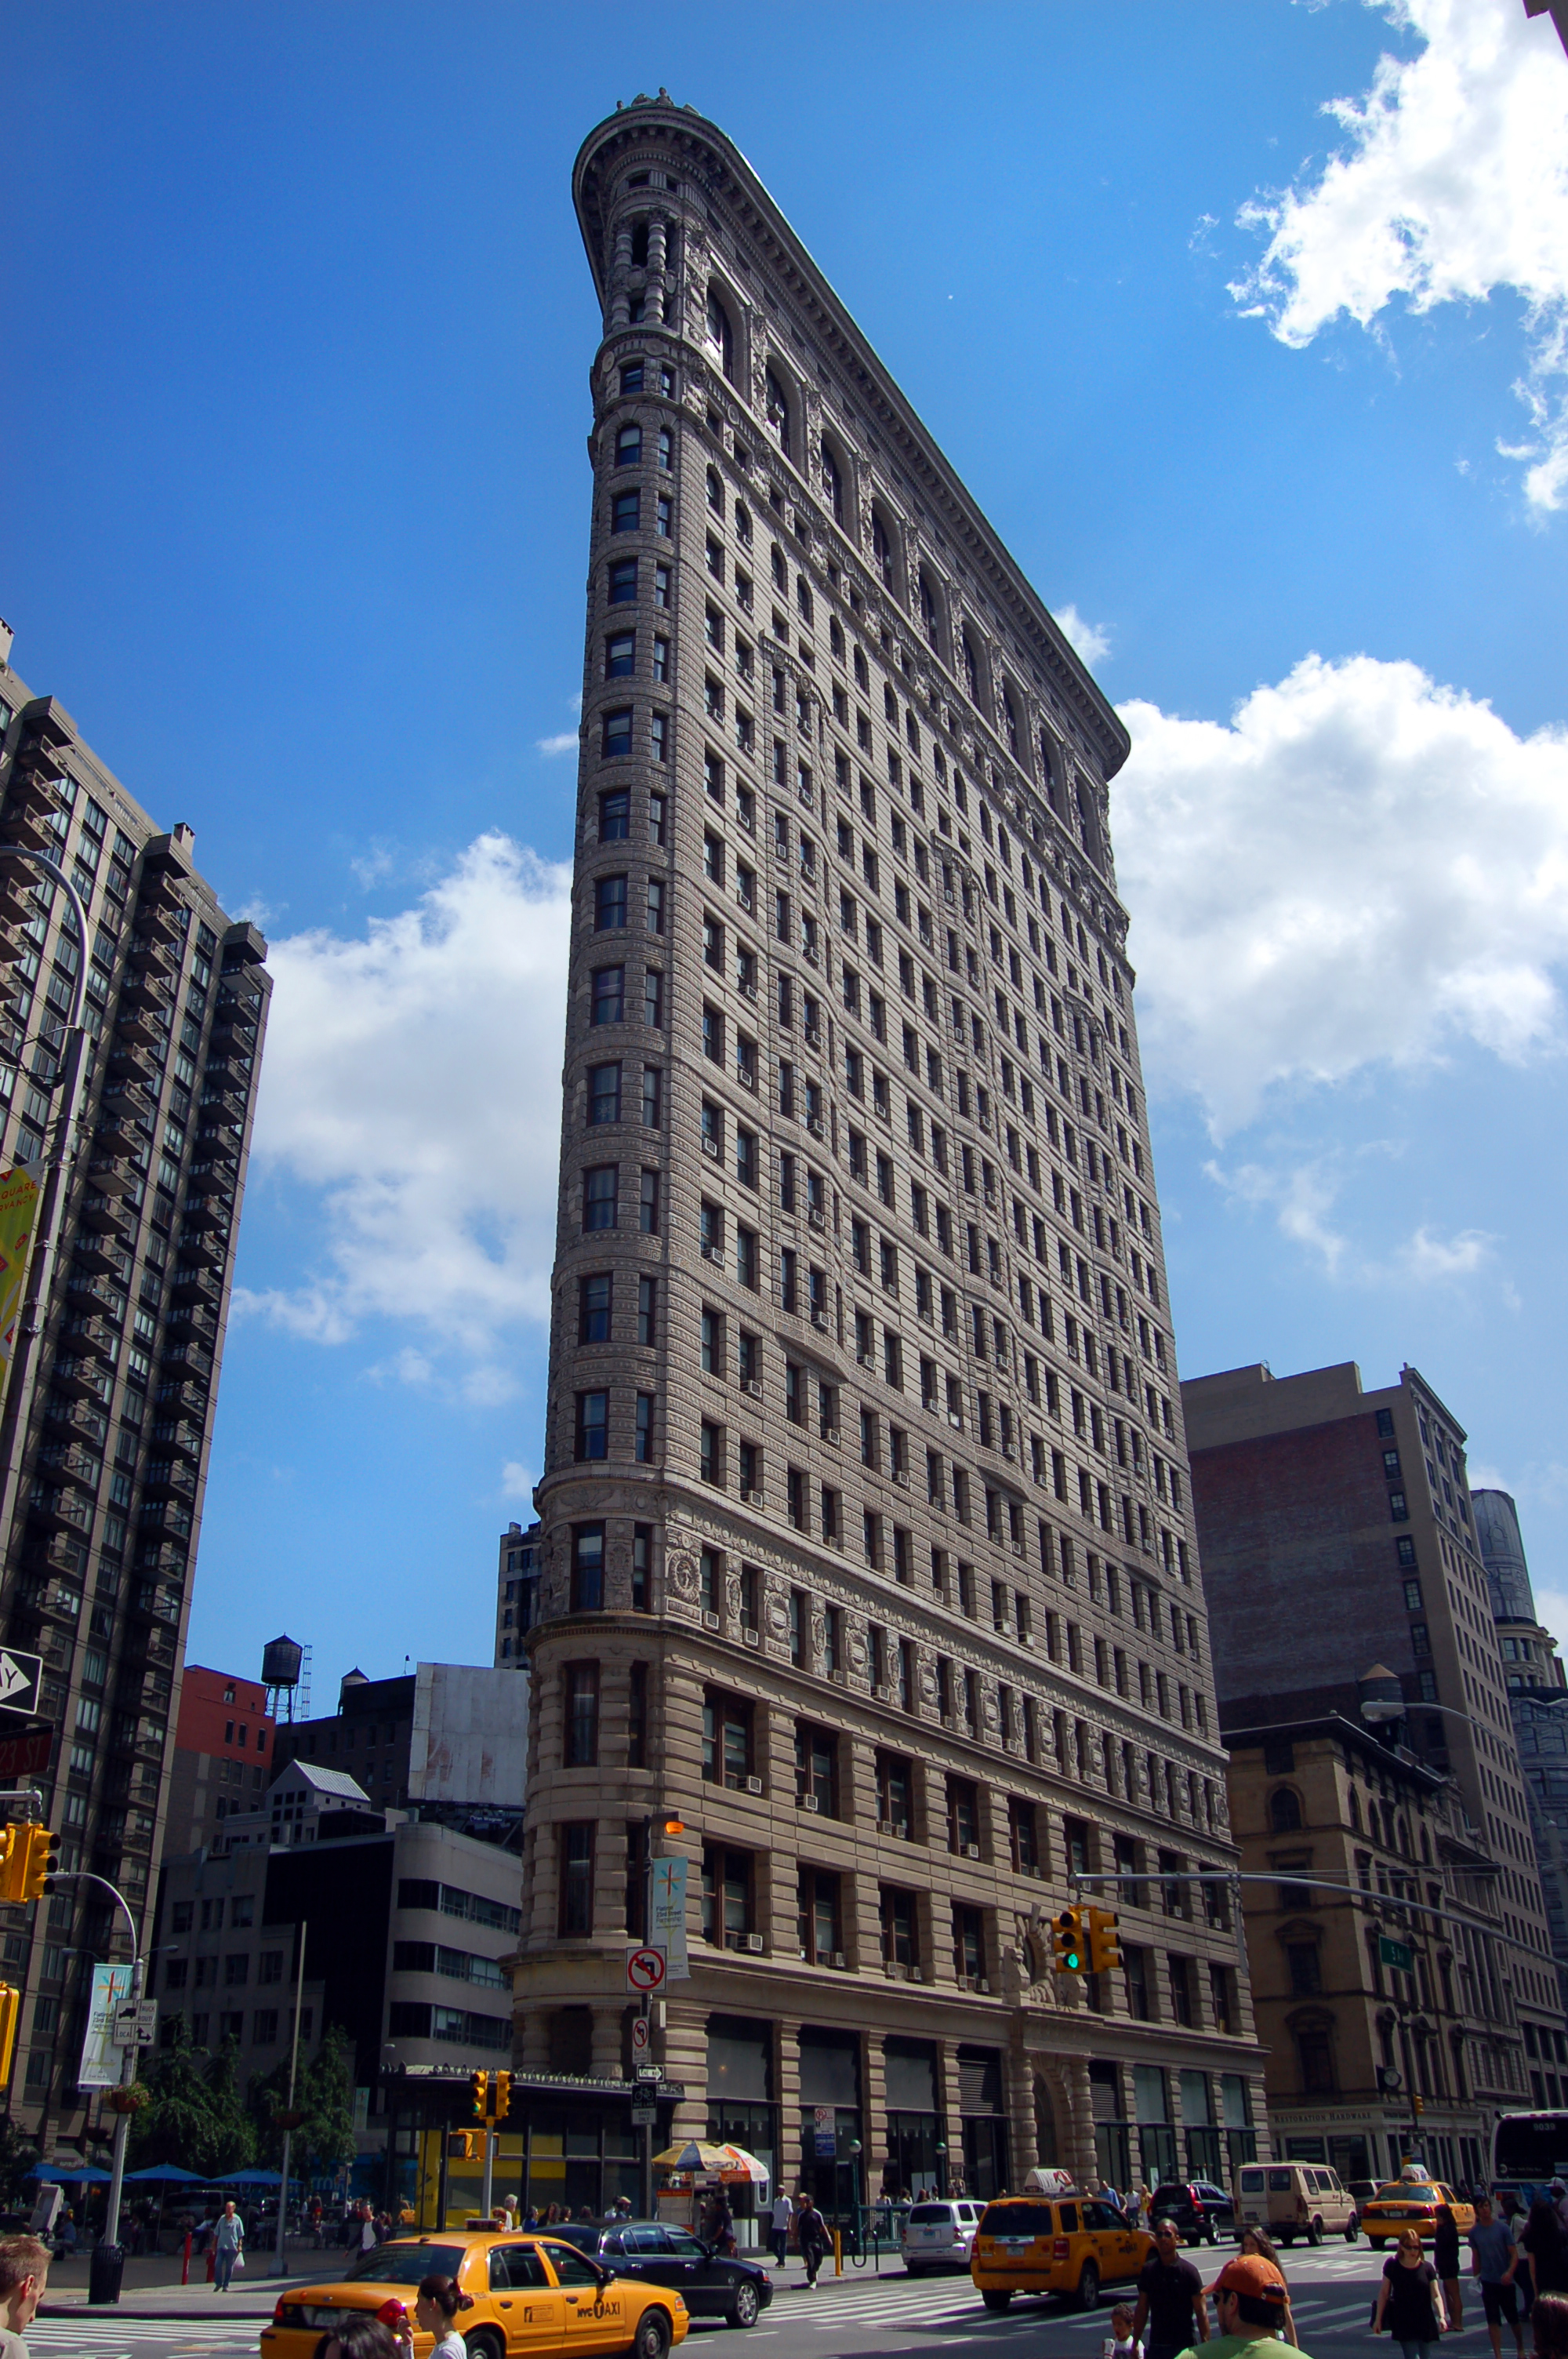 Current photo of the Flatiron Building